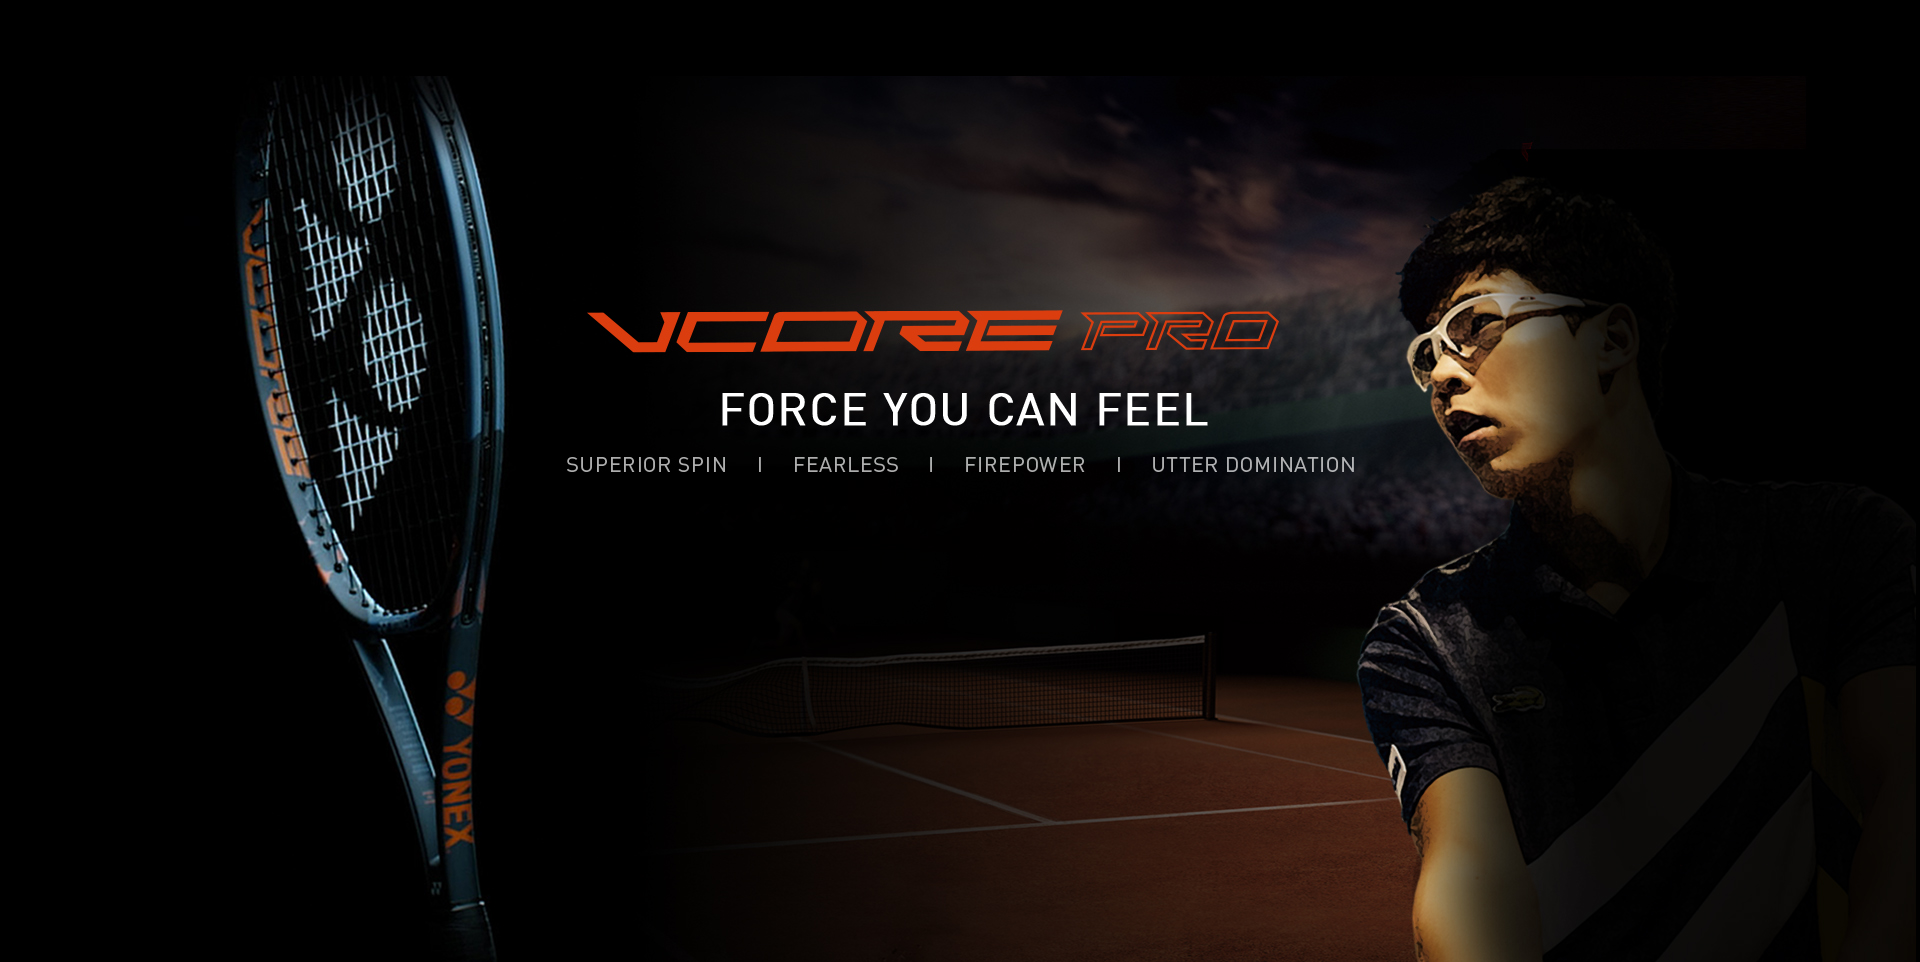 VCORE PRO FORCE YOU CAN FEEL